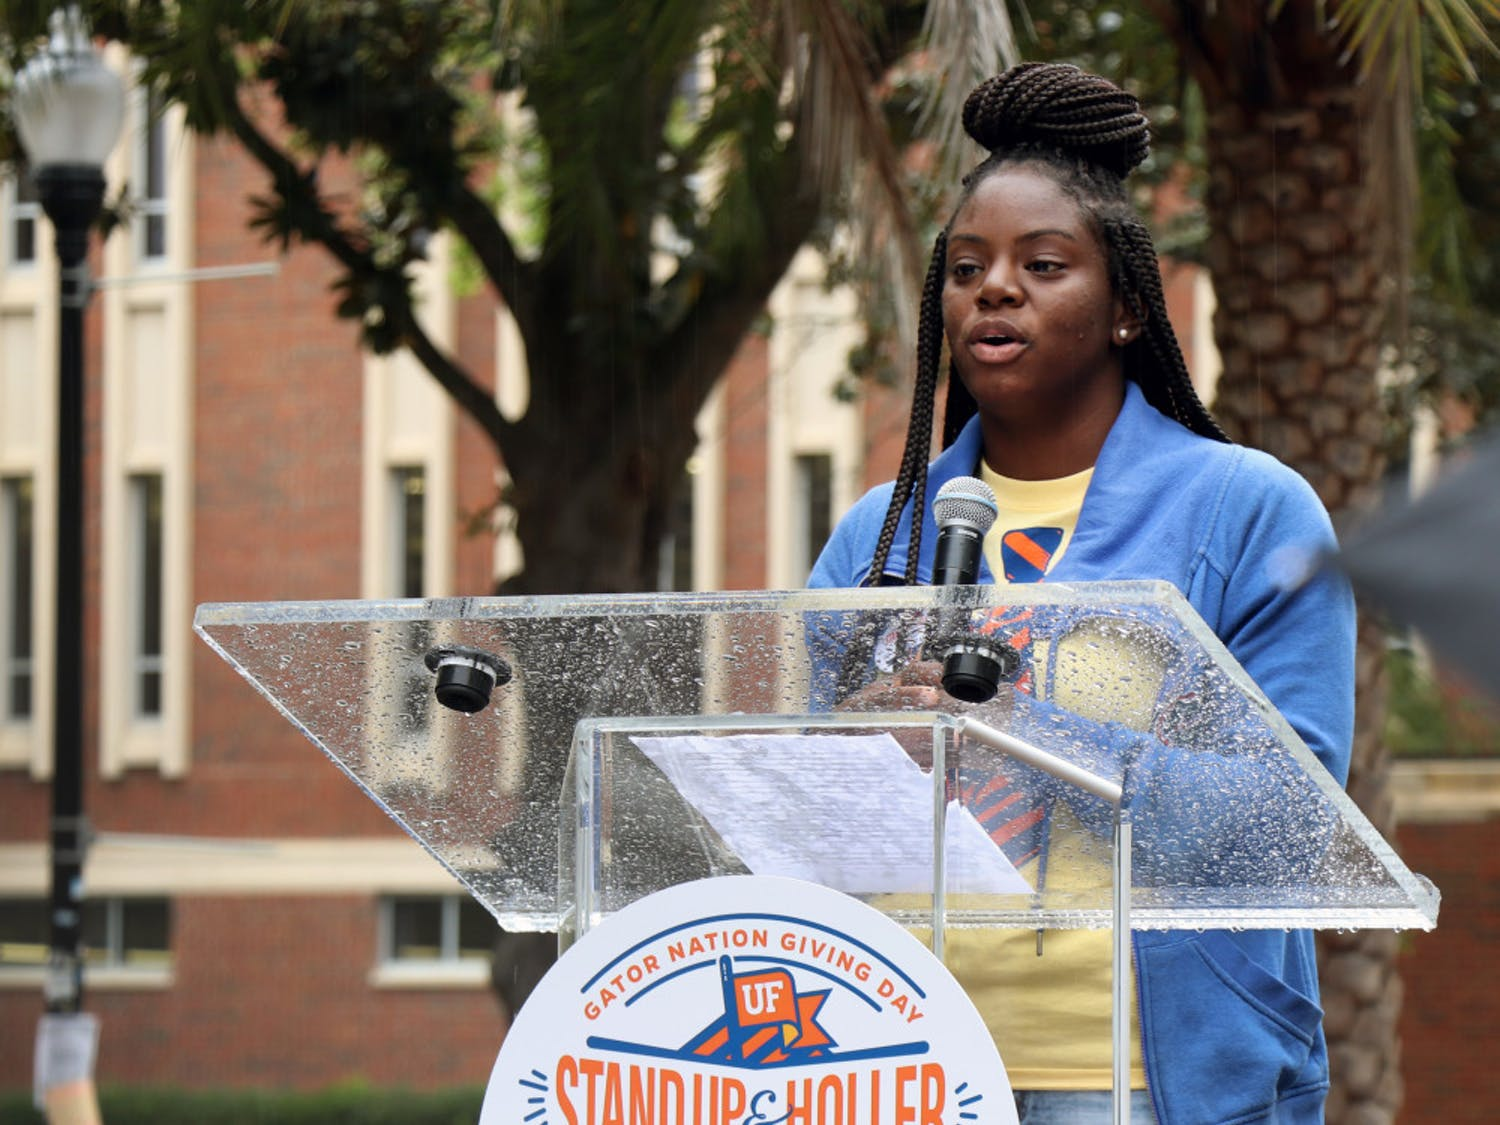 """Akiya Parks, a first-generation student and Machen Florida Opportunity Scholar, addresses the crowd on the Plaza of the Americas Feb. 26, 2019, for the """"Stand Up and Holler: Gator Nation Giving Day."""""""